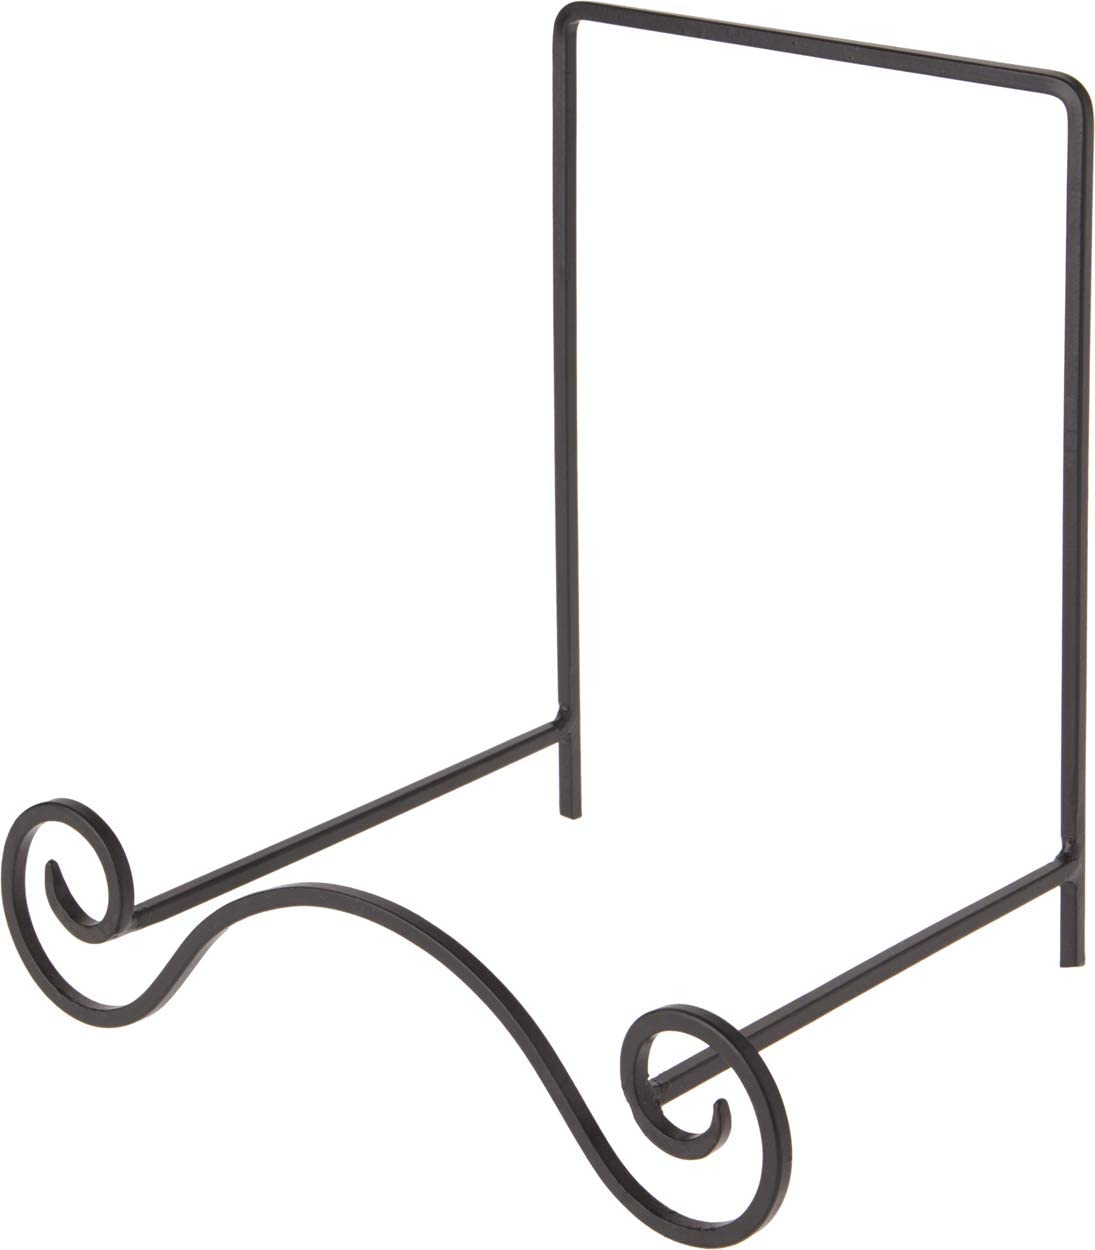 Bard's Wrought Max 41% OFF Iron Bowl or Deep Platter Stand 9.25